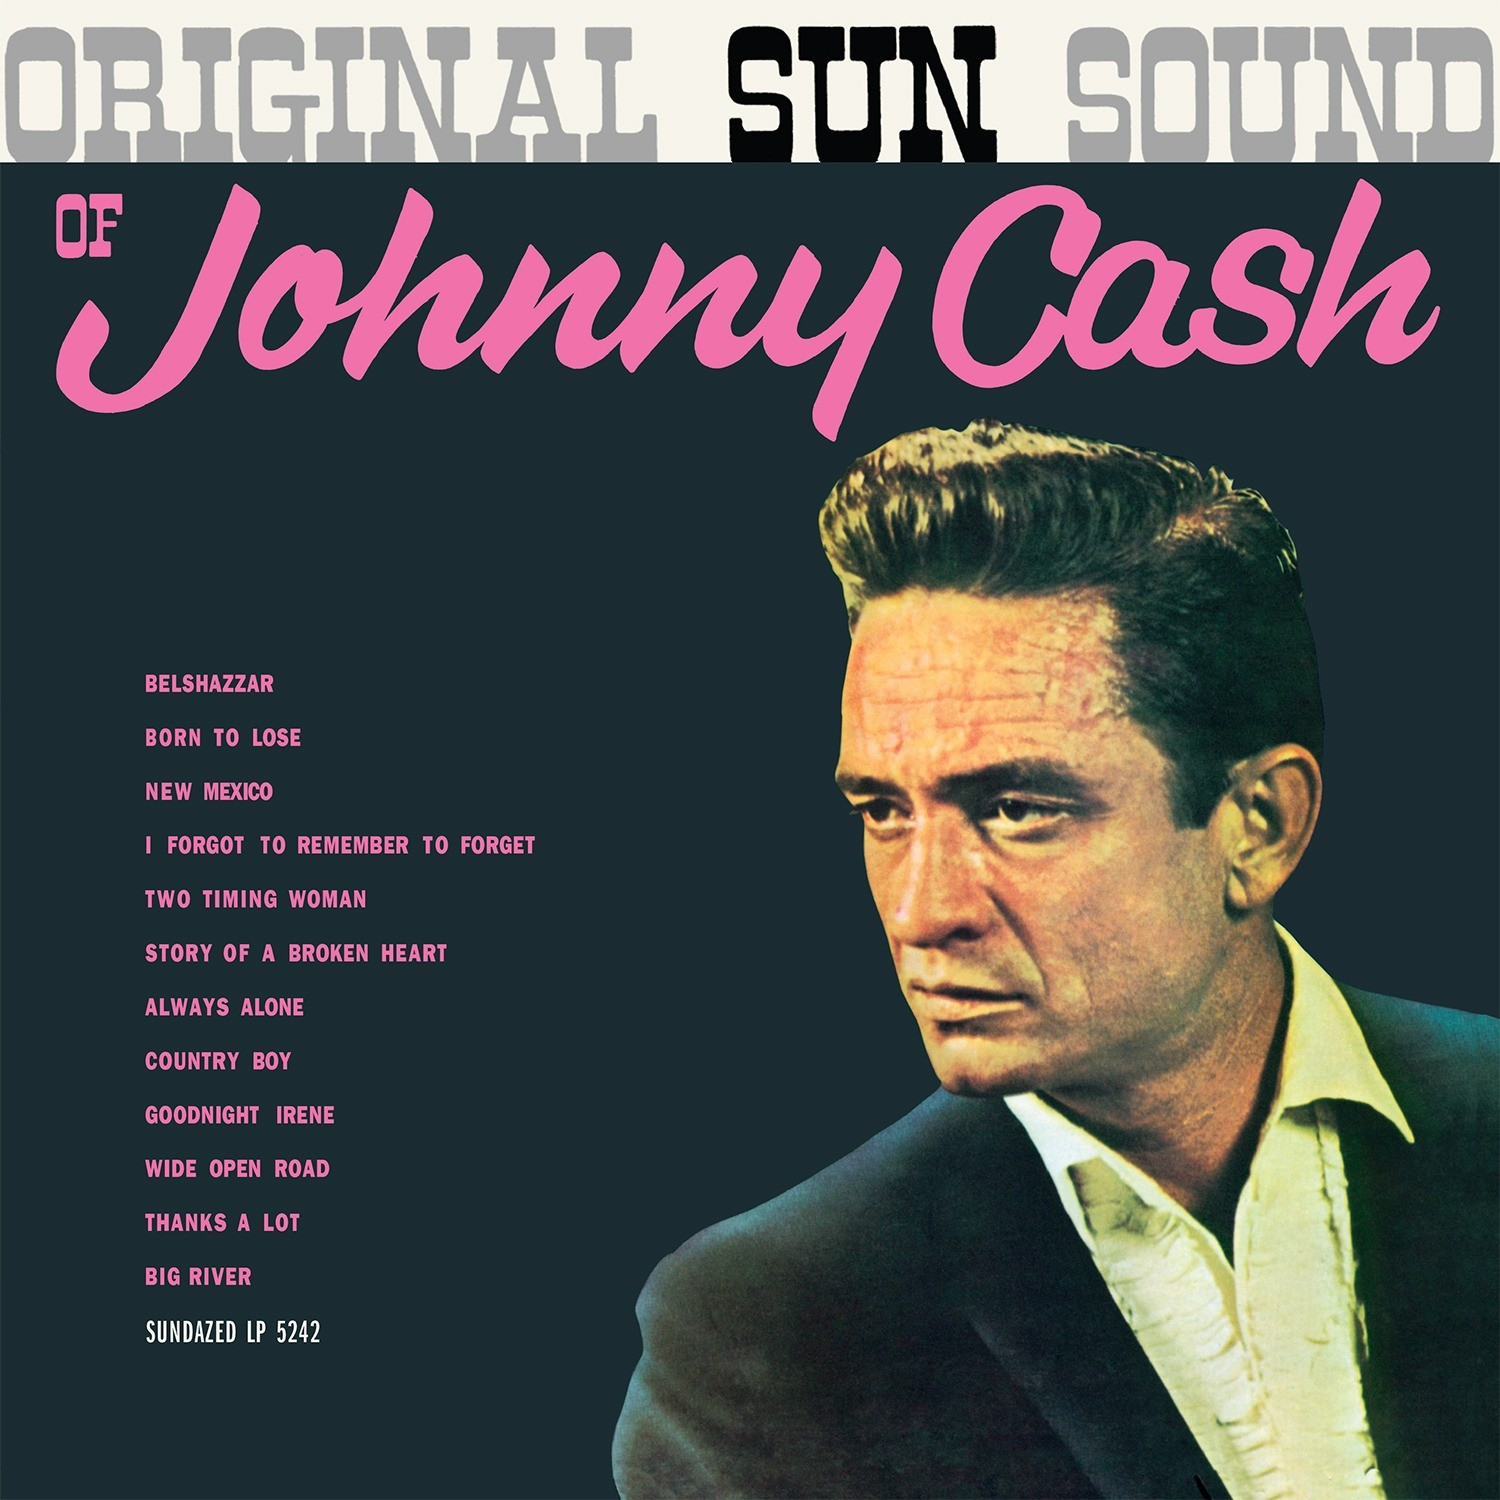 Johnny Cash - The Original Sun Sound Of Johnny Cash LP